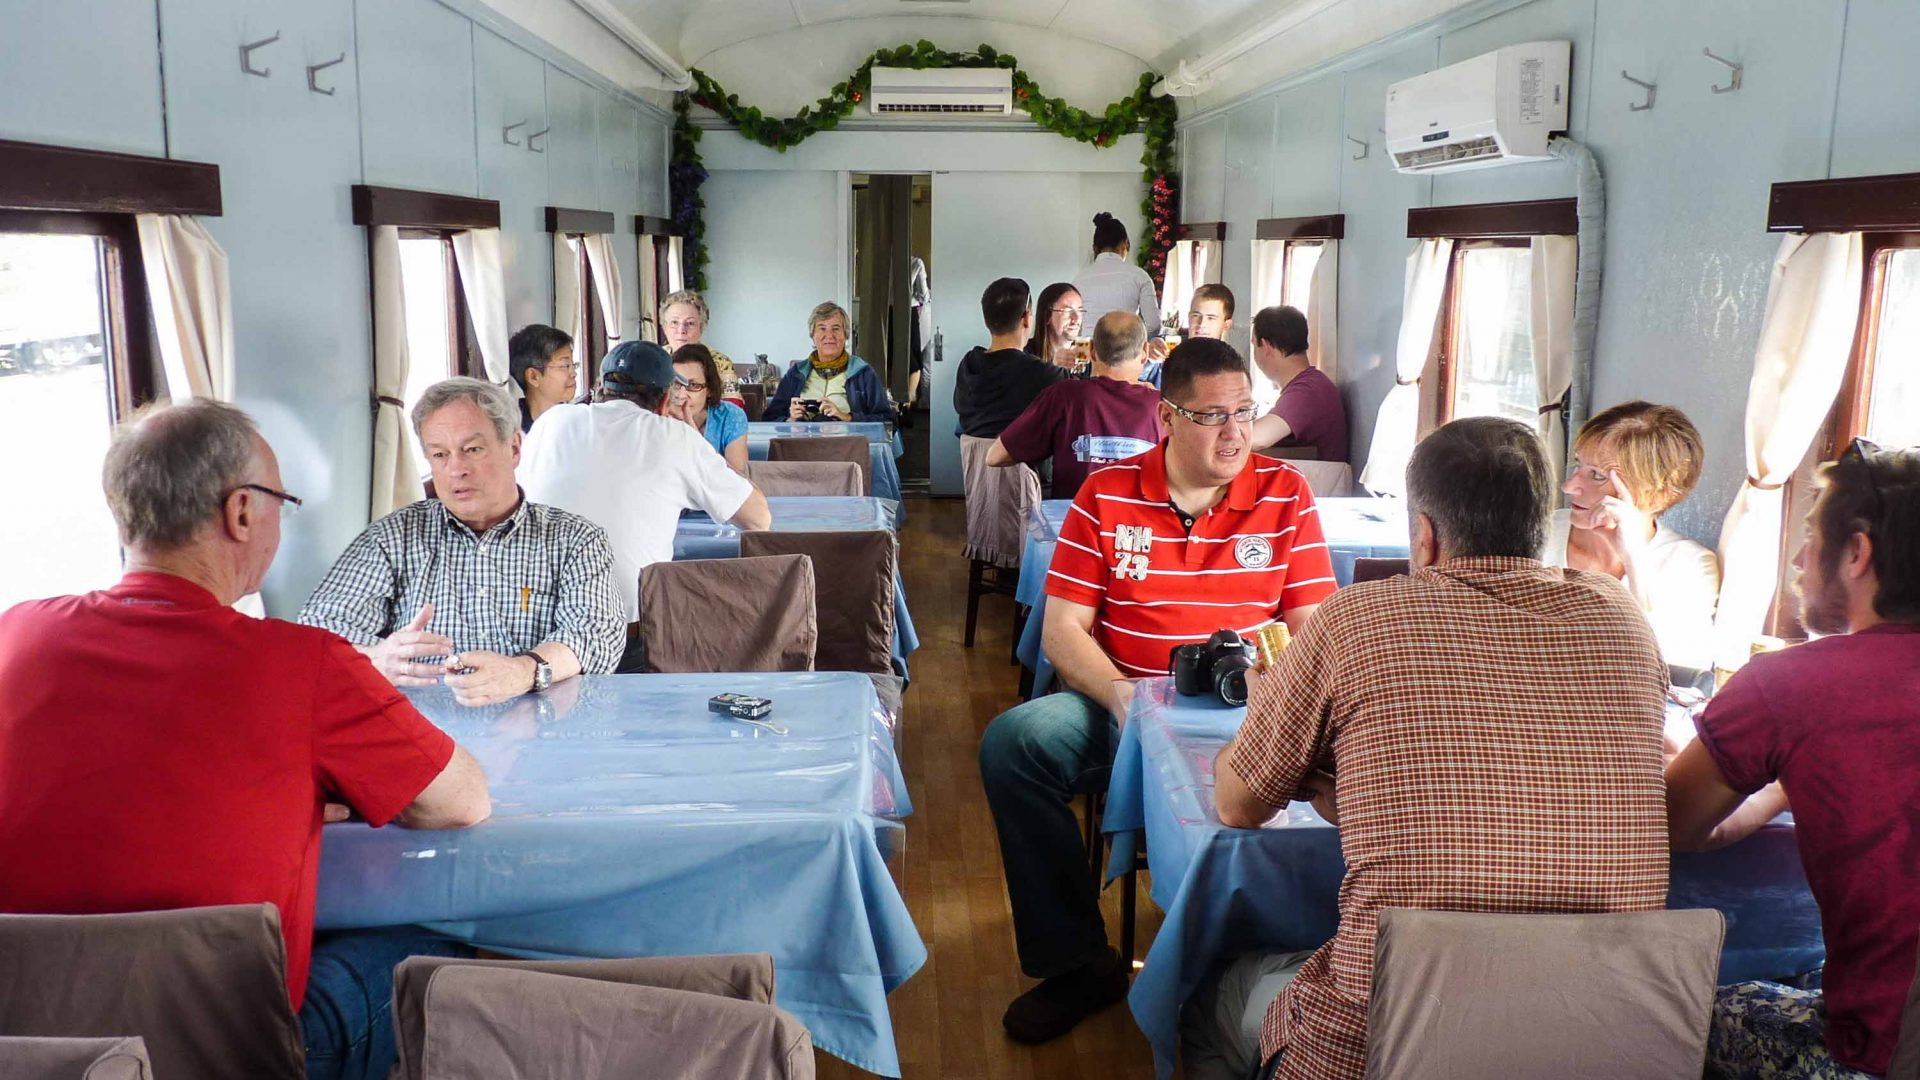 The dining carriage on the tourist train.